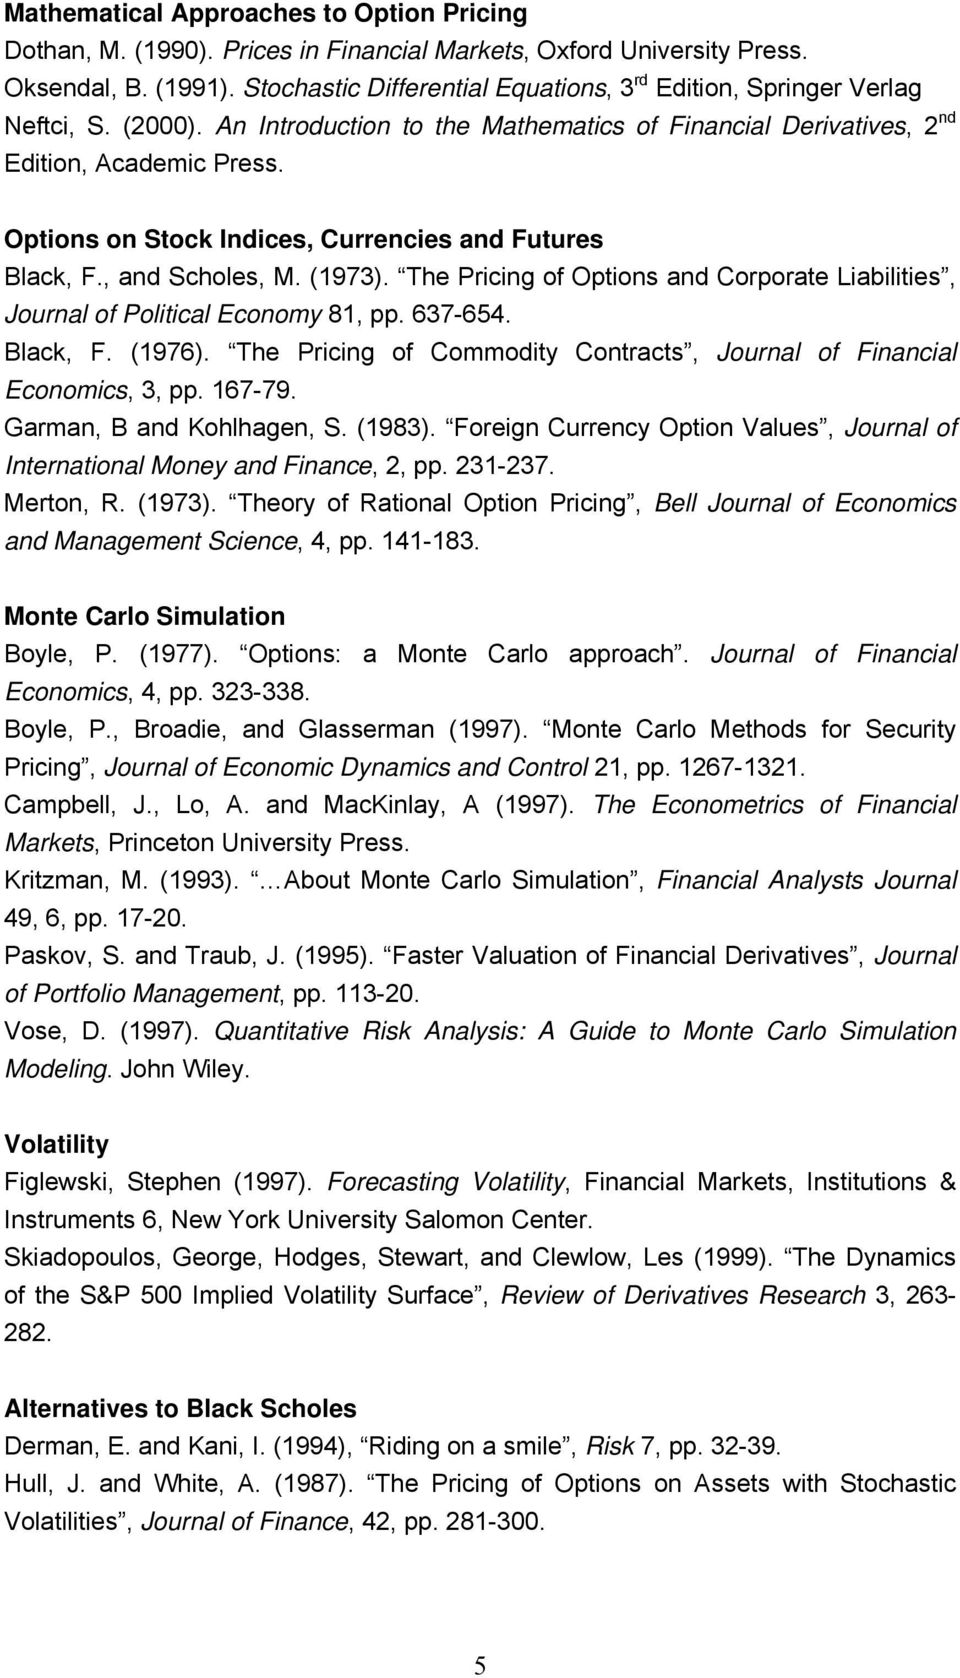 Options on Stock Indices, Currencies and Futures Black, F., and Scholes, M. (1973). The Pricing of Options and Corporate Liabilities, Journal of Political Economy 81, pp. 637-654. Black, F. (1976).